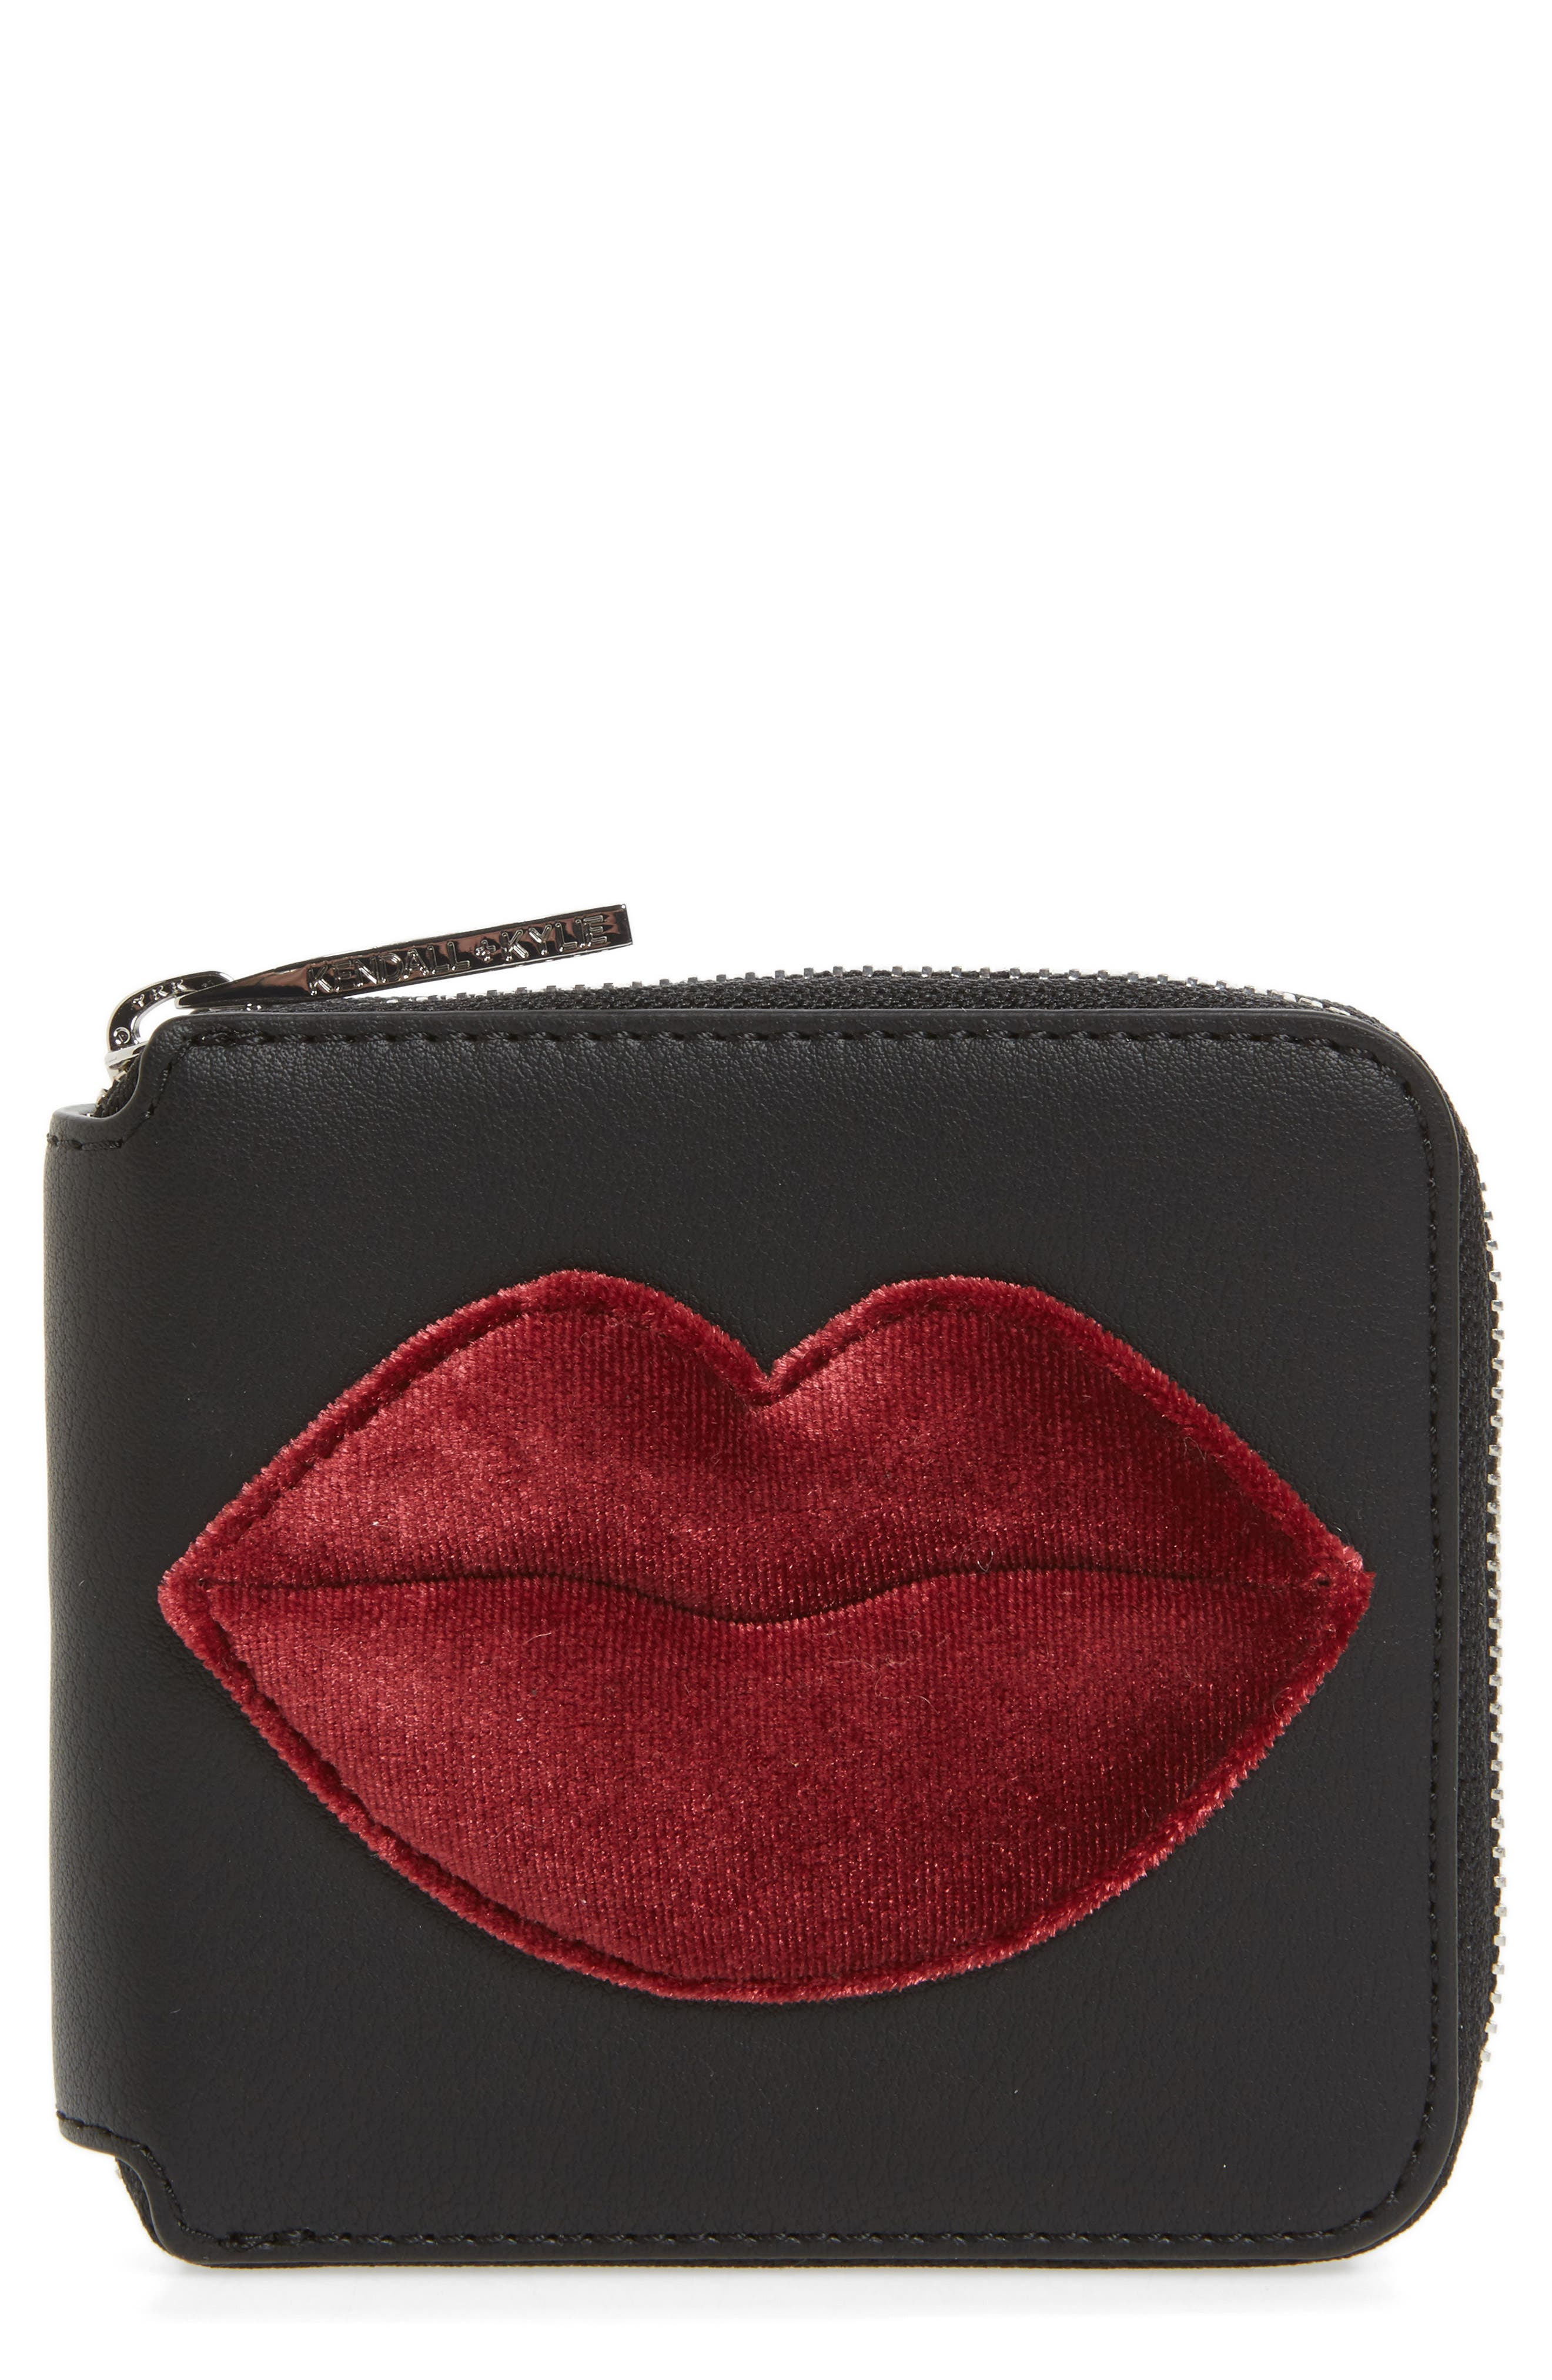 Main Image - KENDALL + KYLIE Brody Lips Wallet